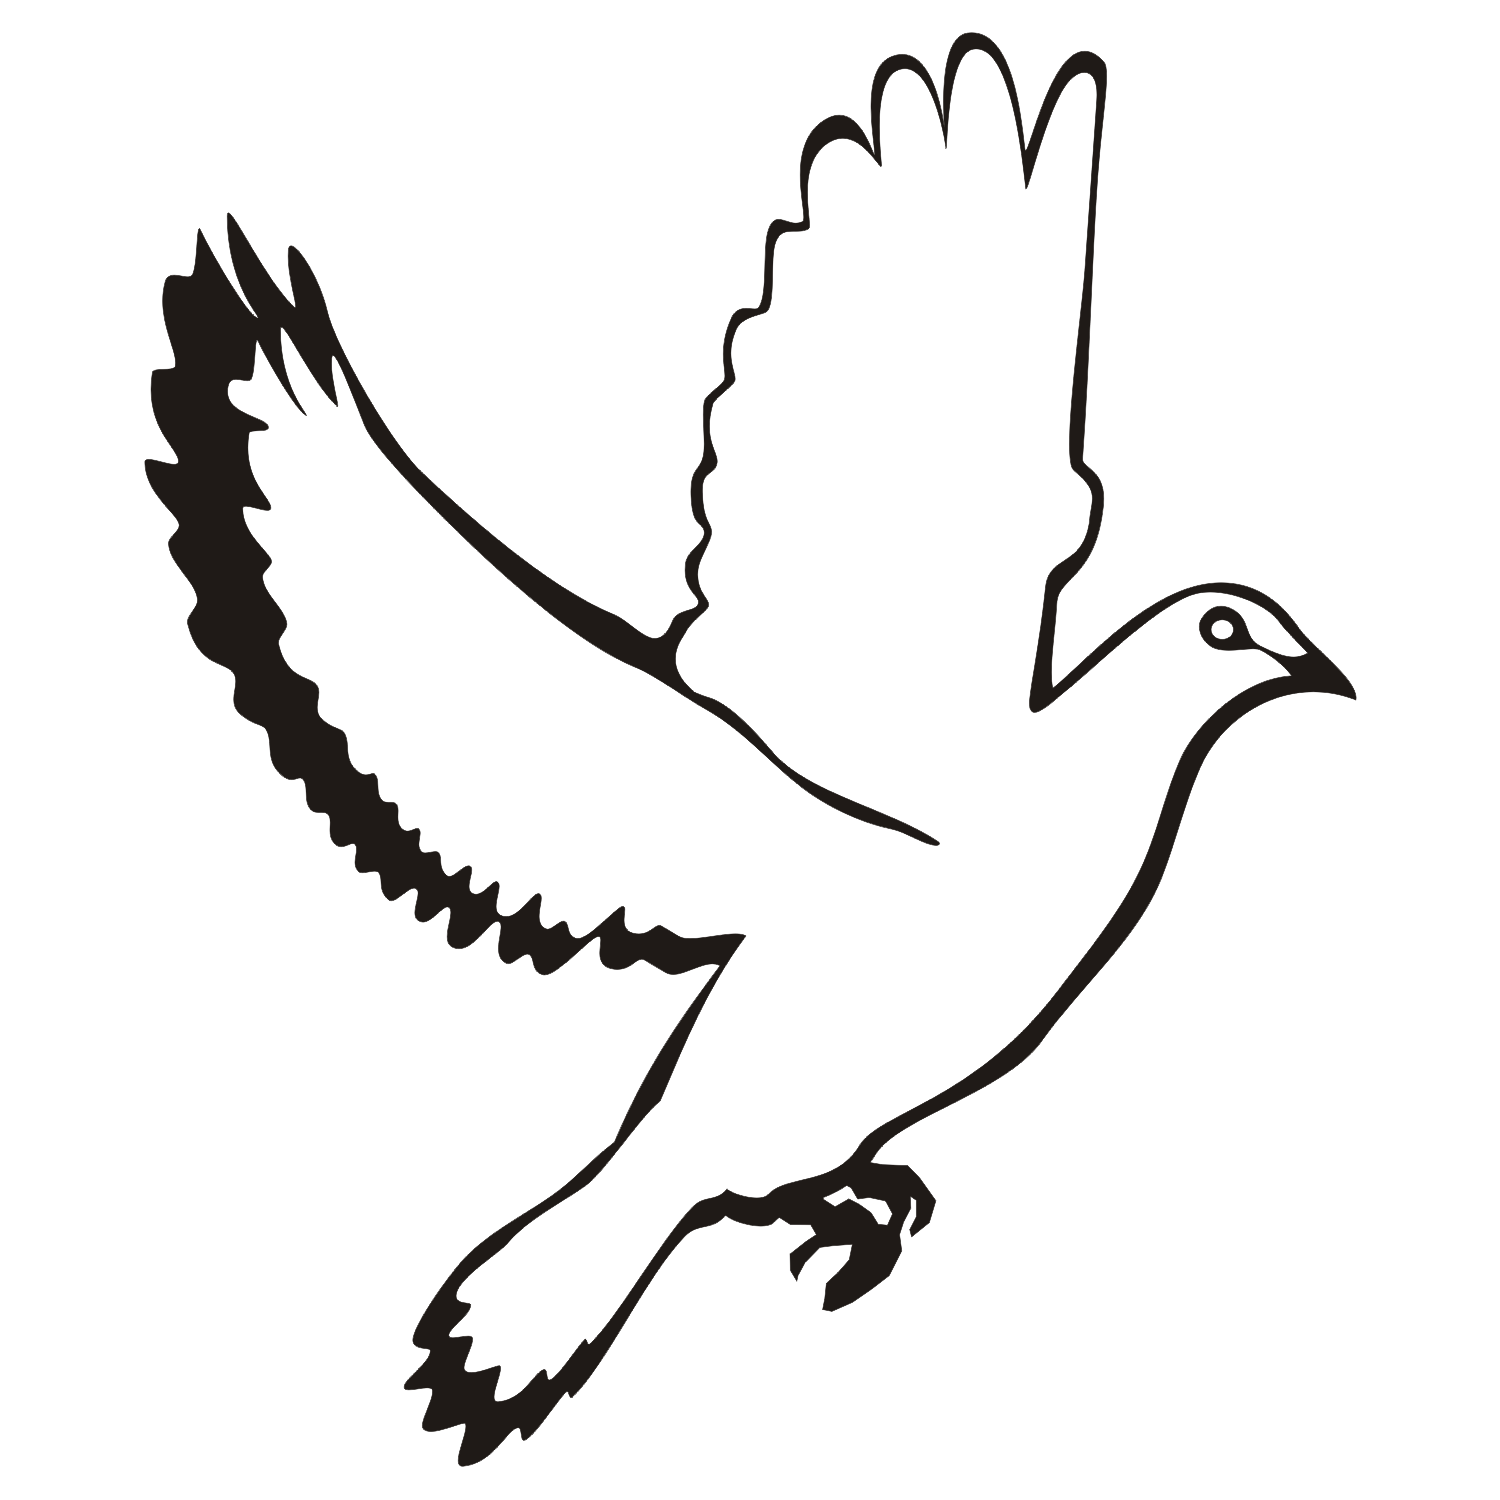 A free flying dove isolated on a white background. Free vector illustration.